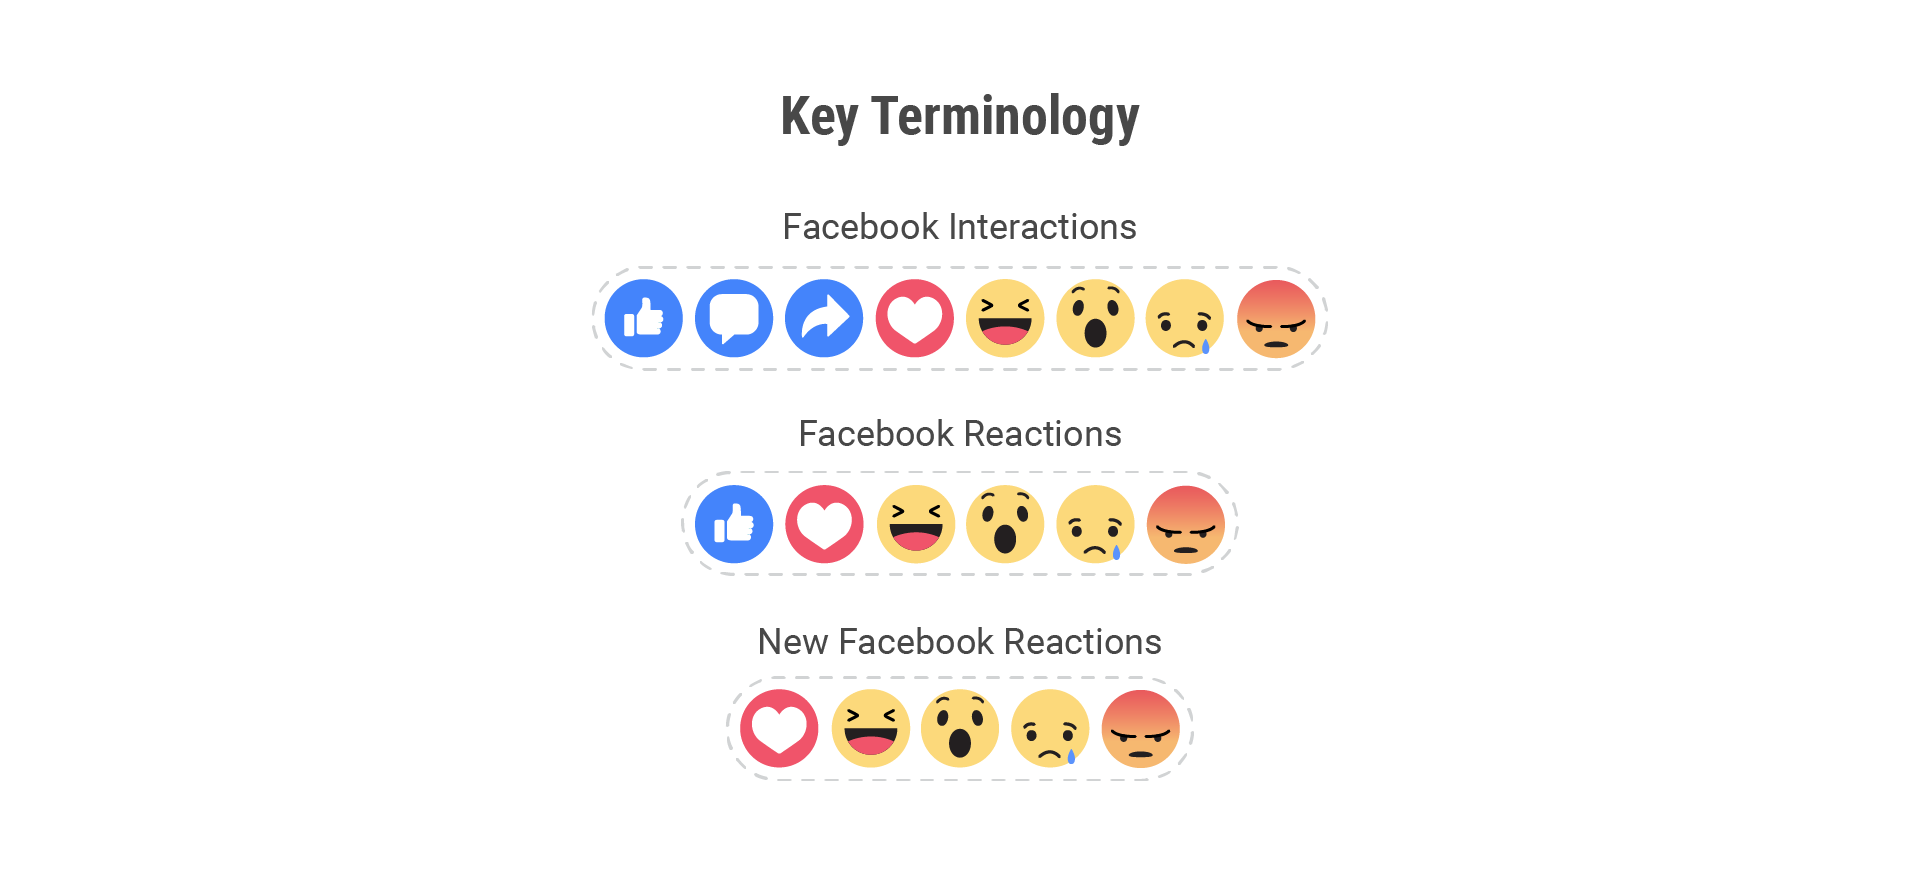 Facebook Interactions terminology